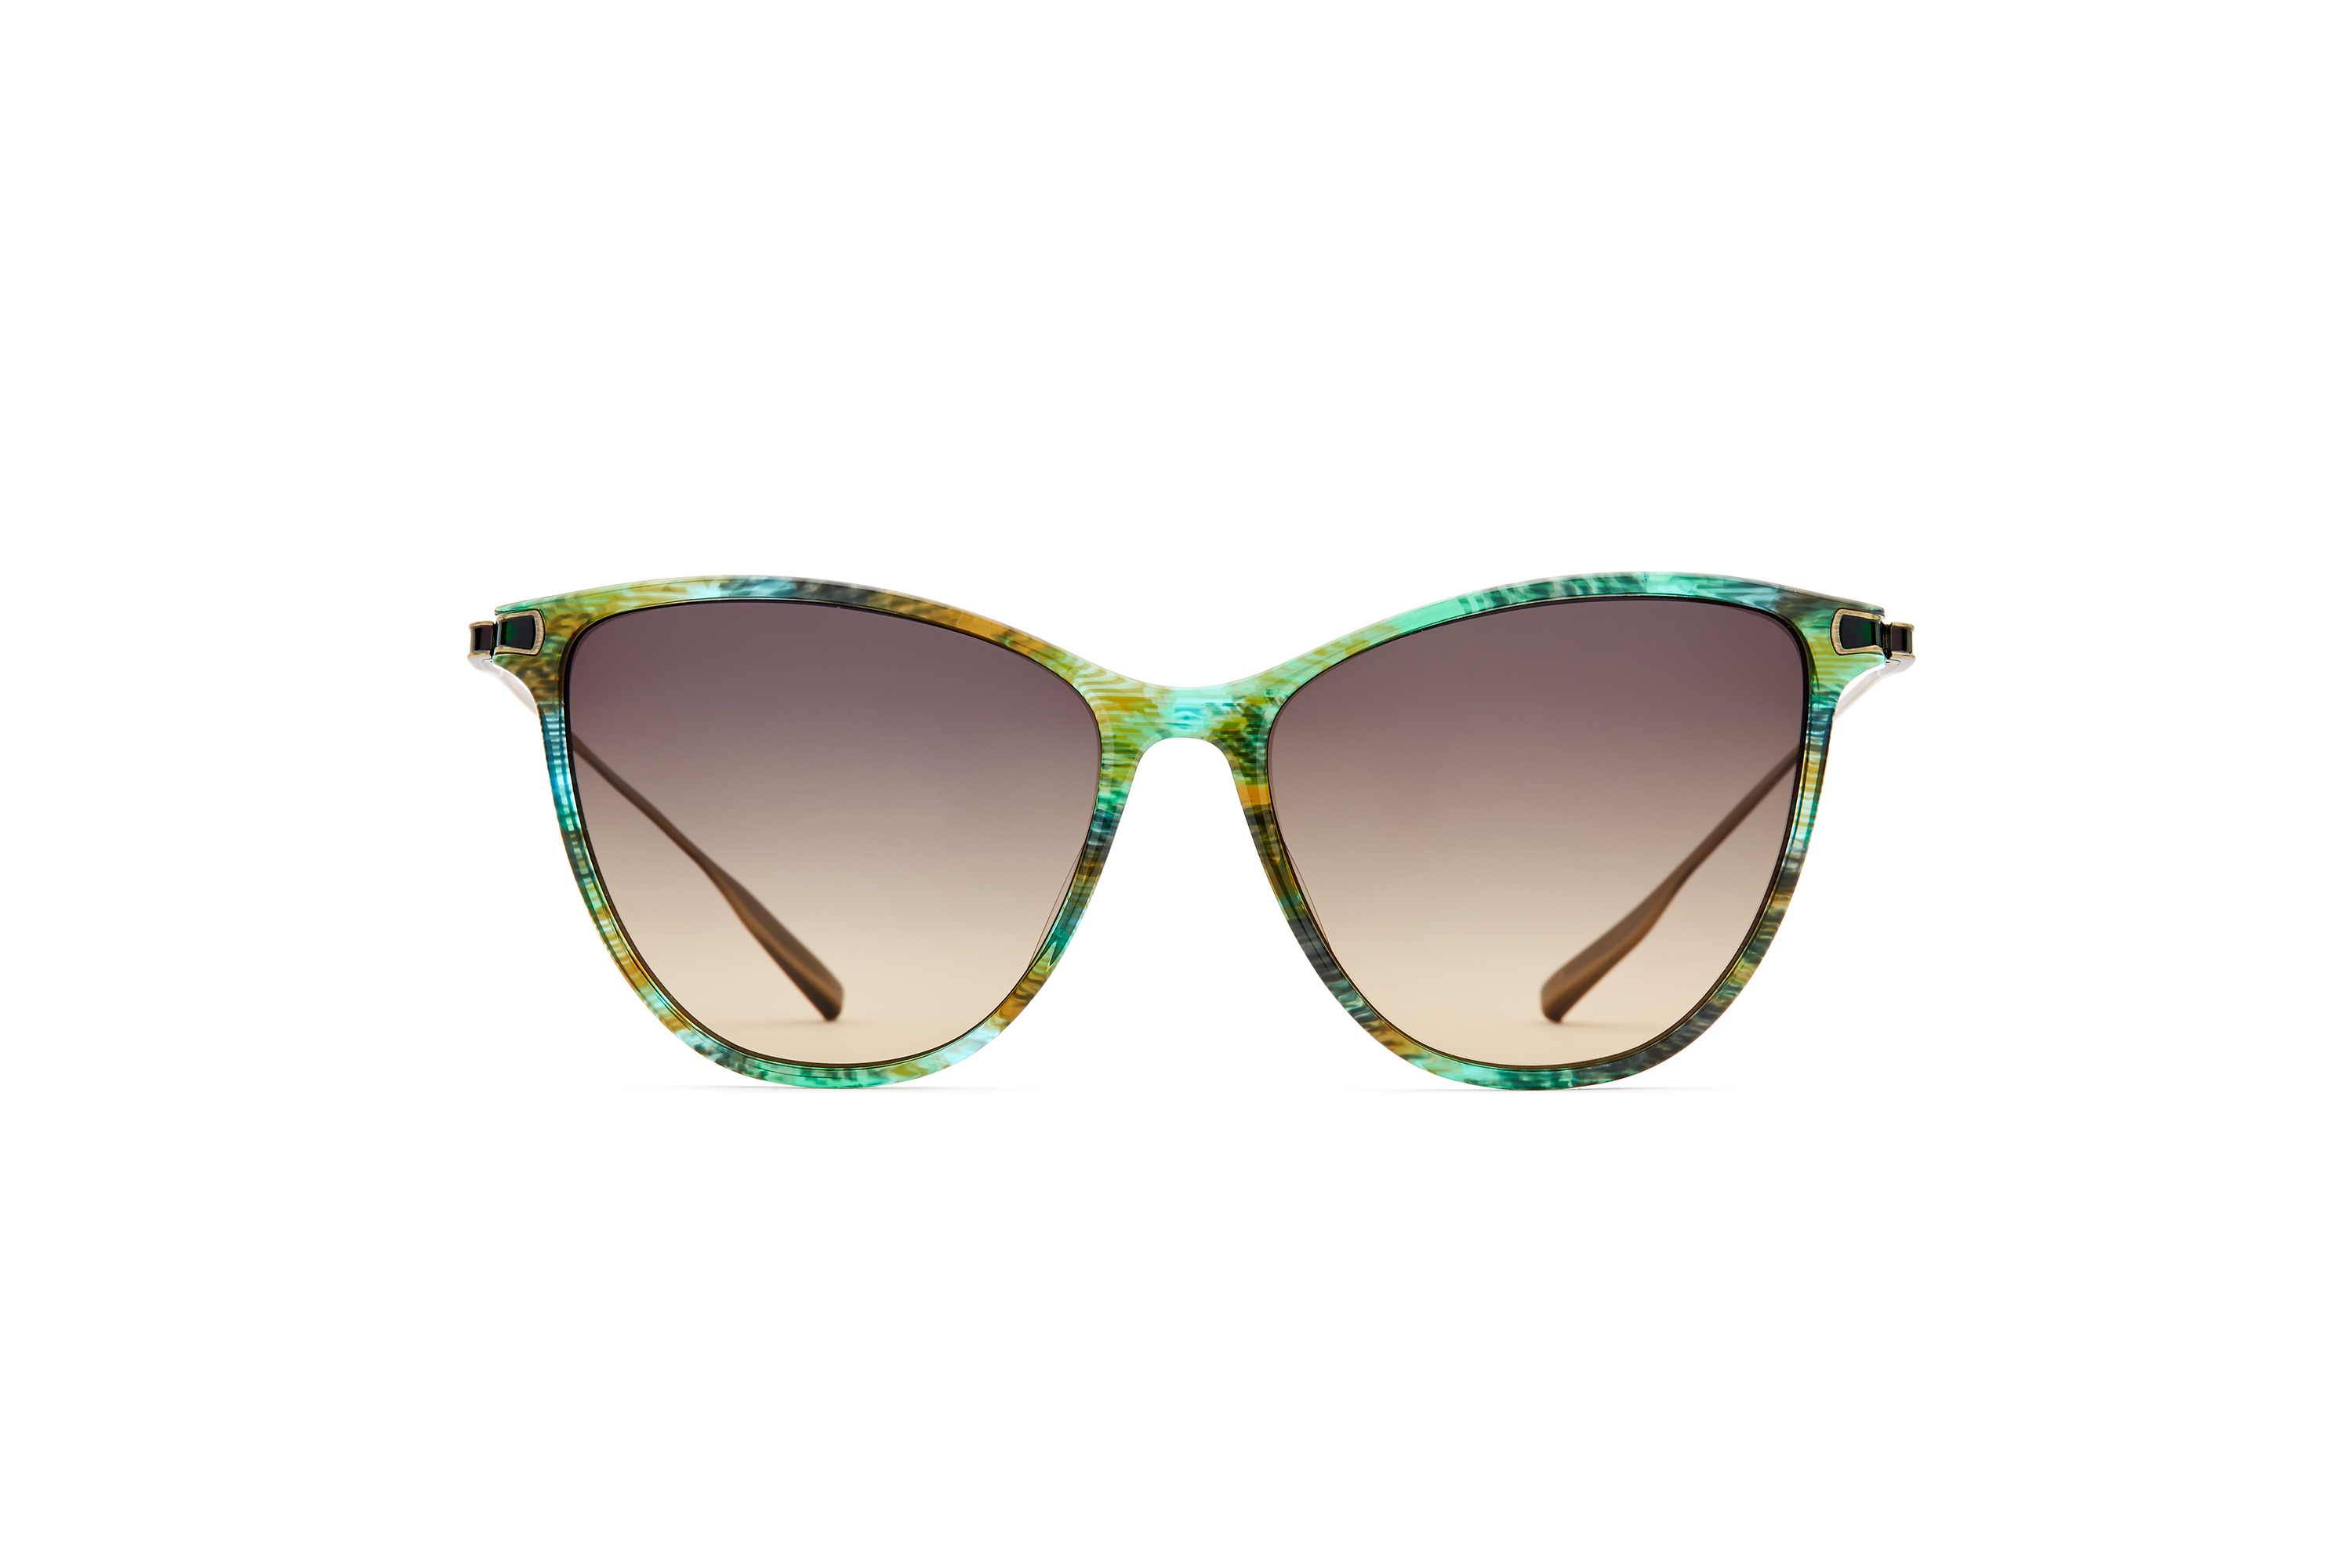 SALT. | frame: NIA | color: sandy sea green